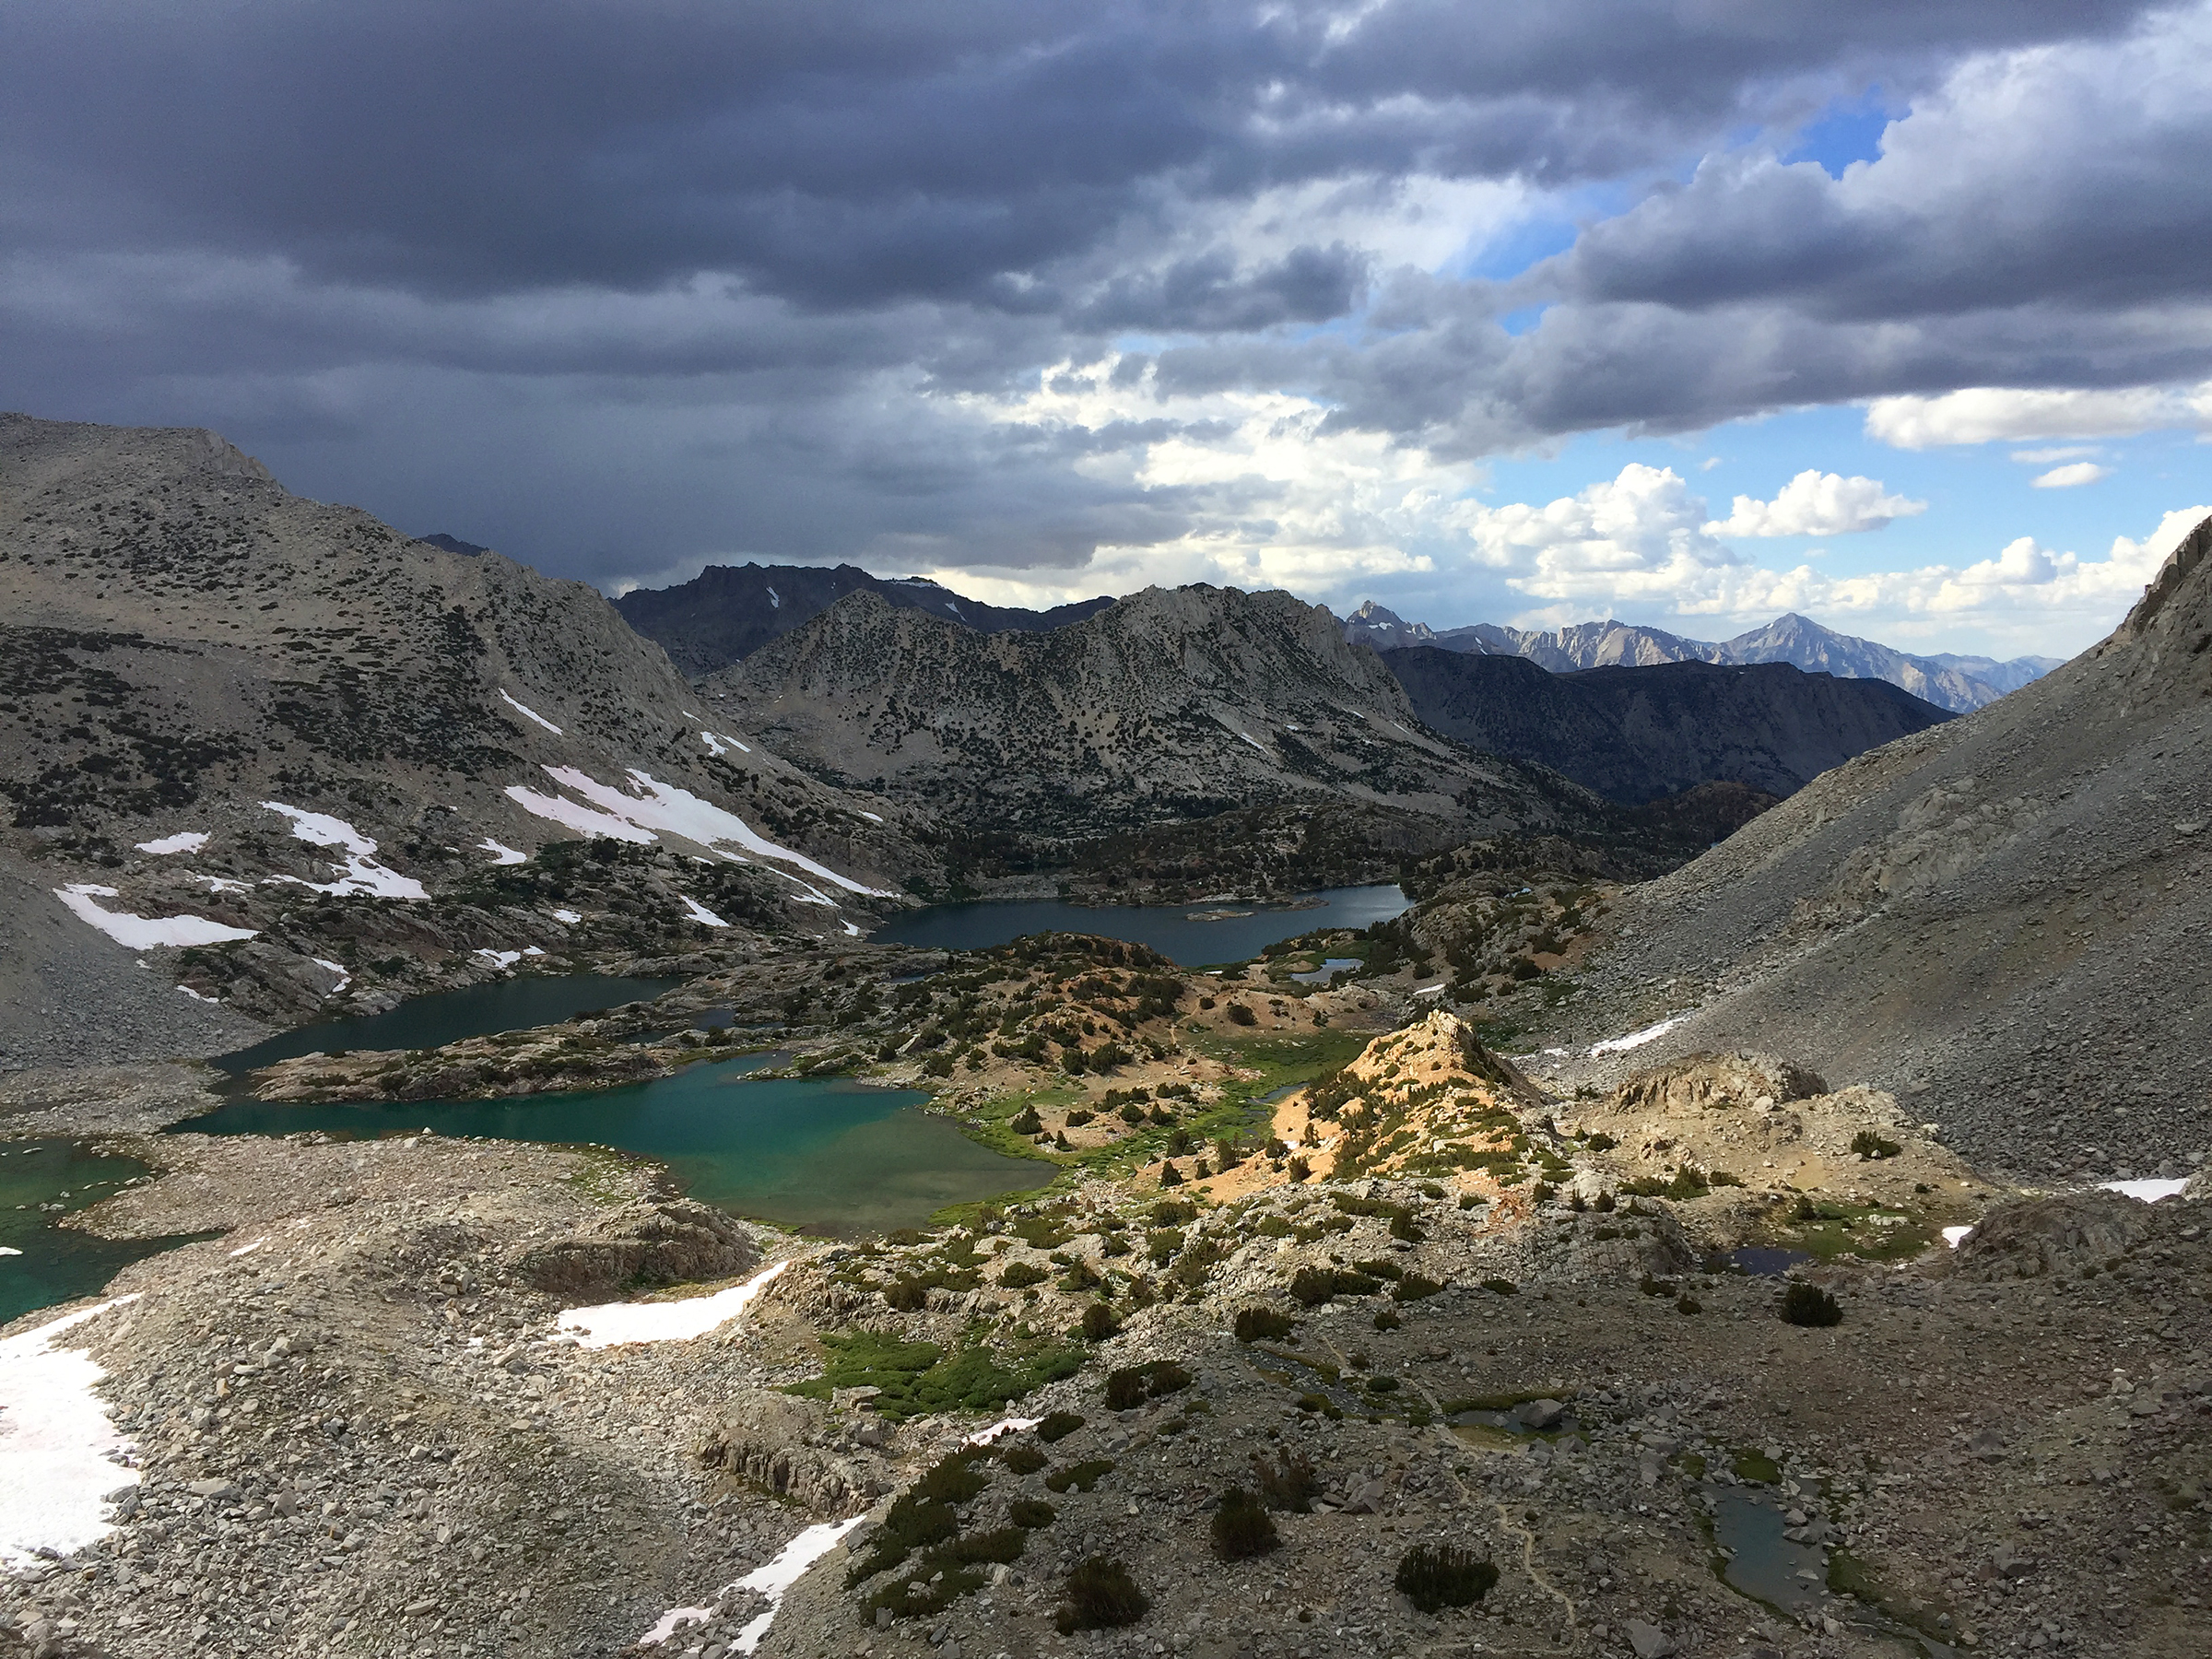 trailname-backstroke-sierra-high-route-2017_0874.jpg